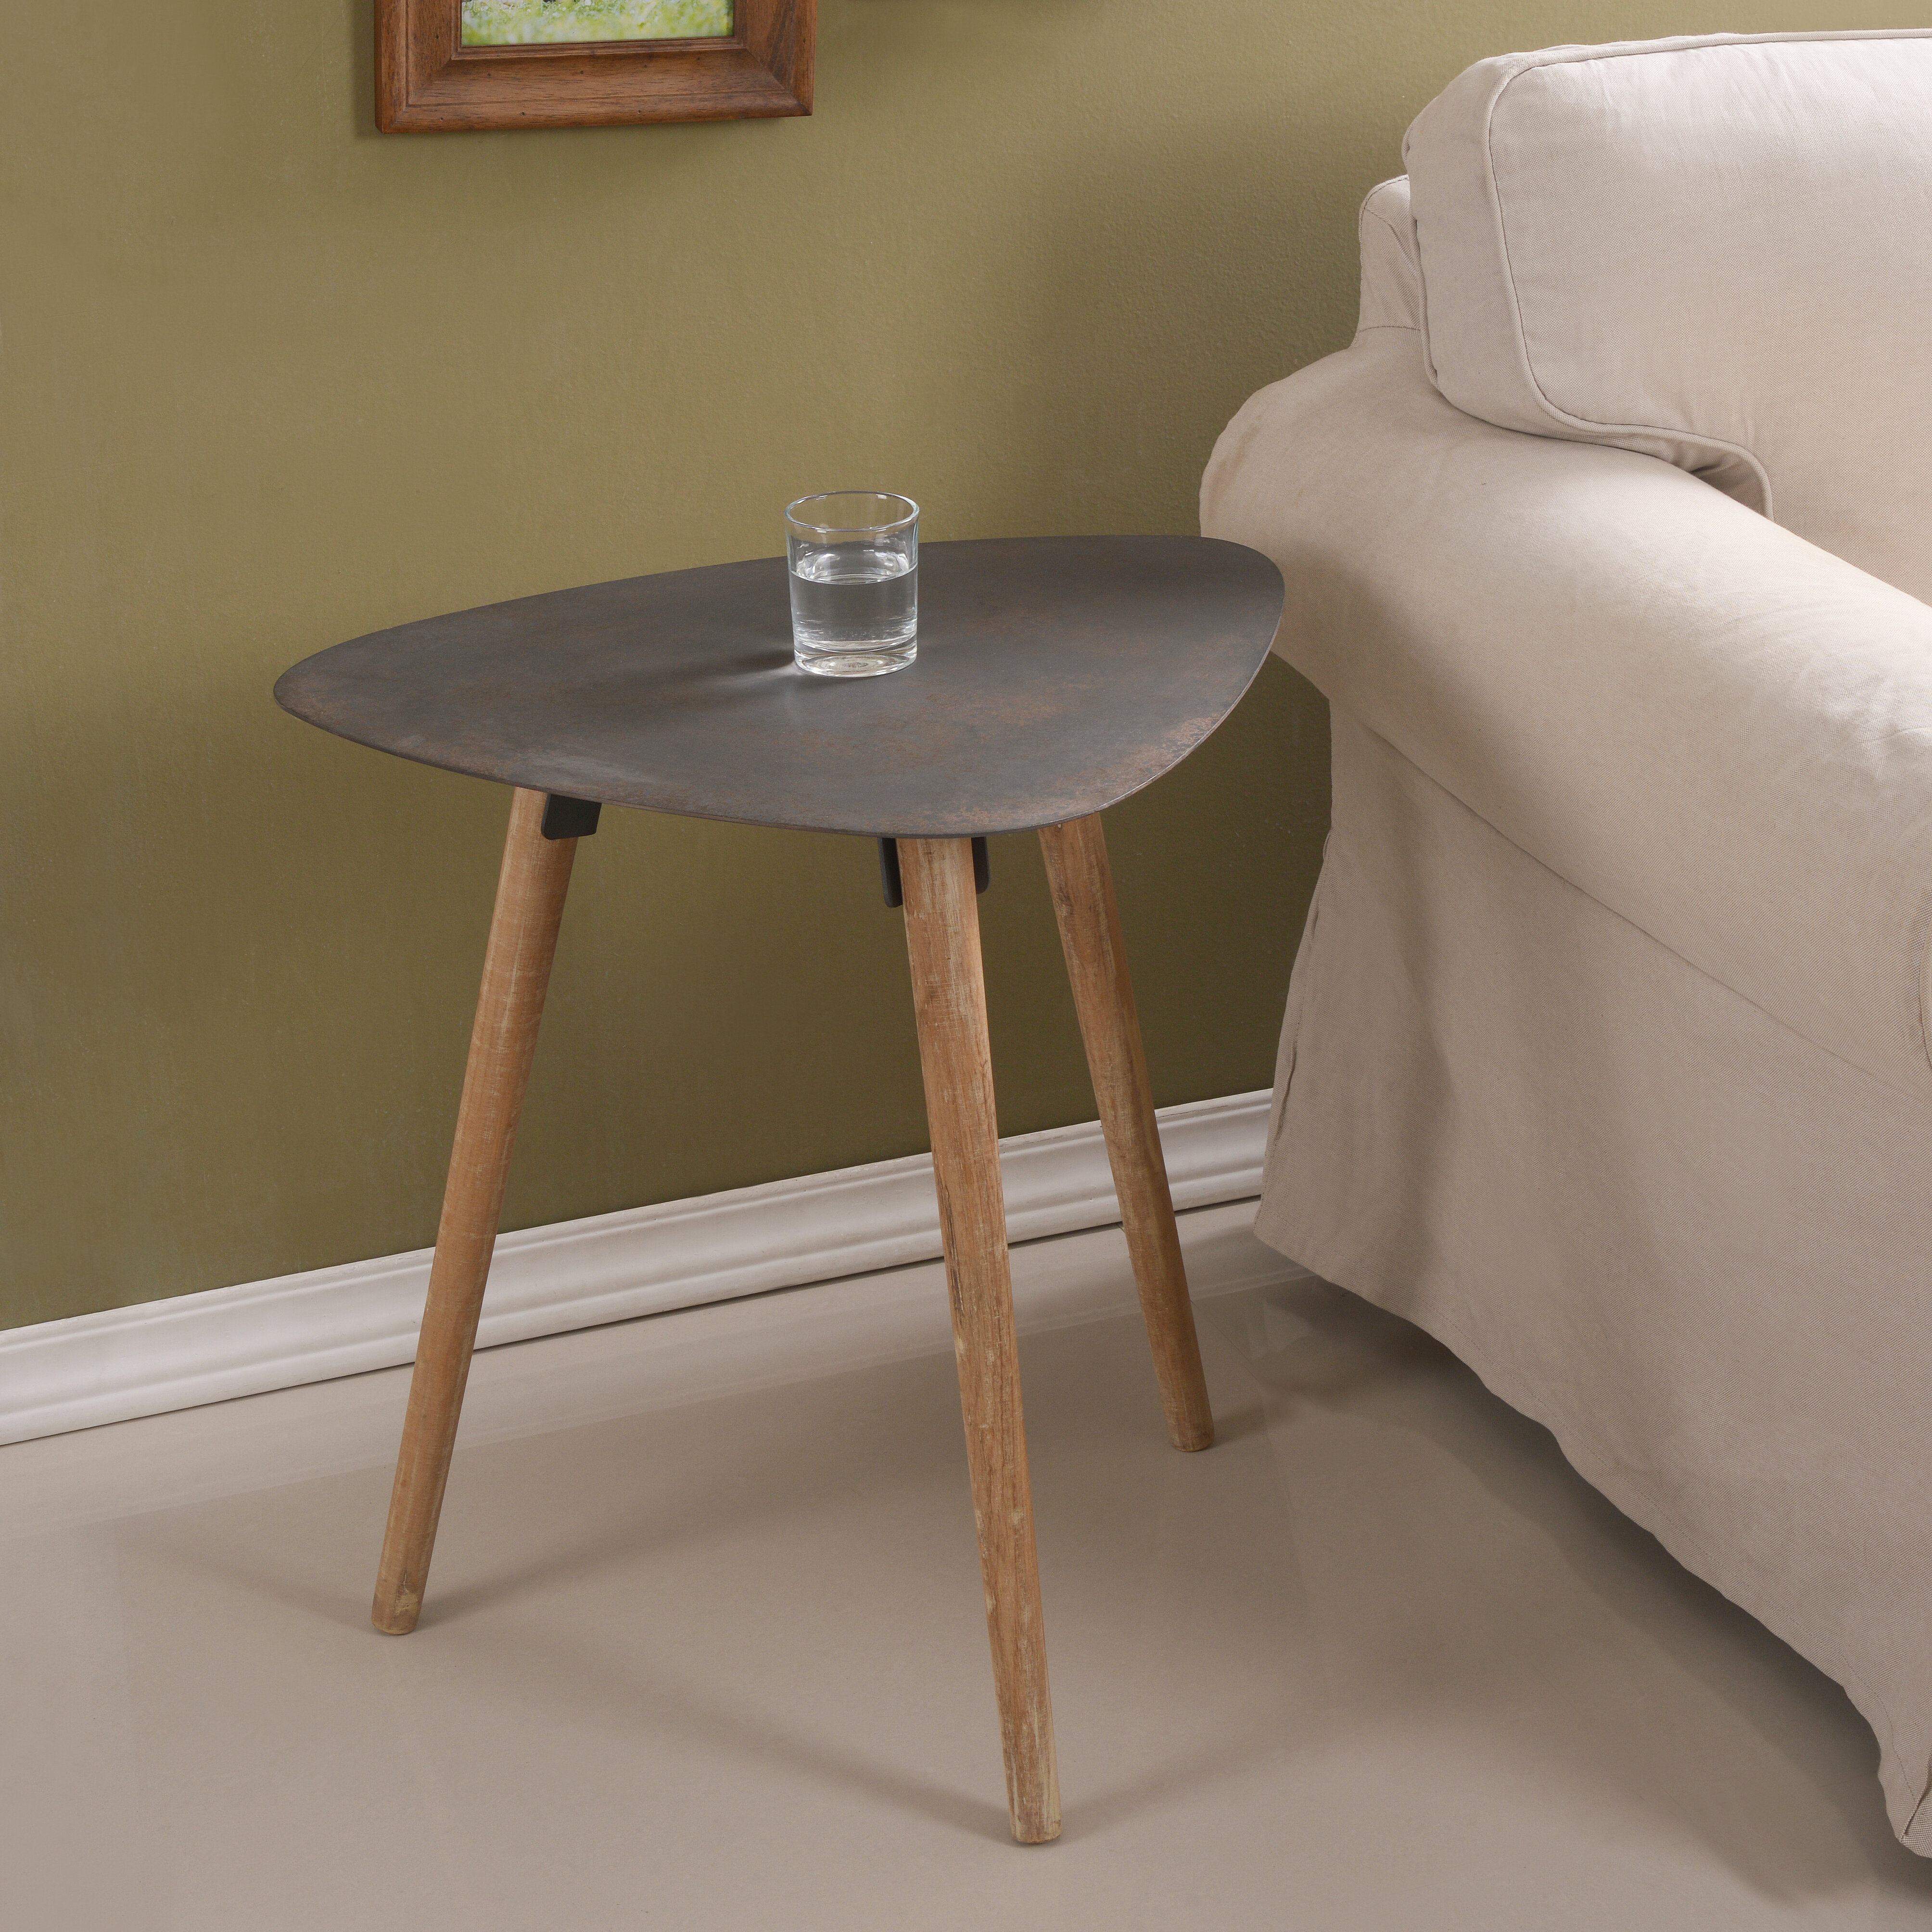 Corrigan Studio 3 Legs End Table Wayfair